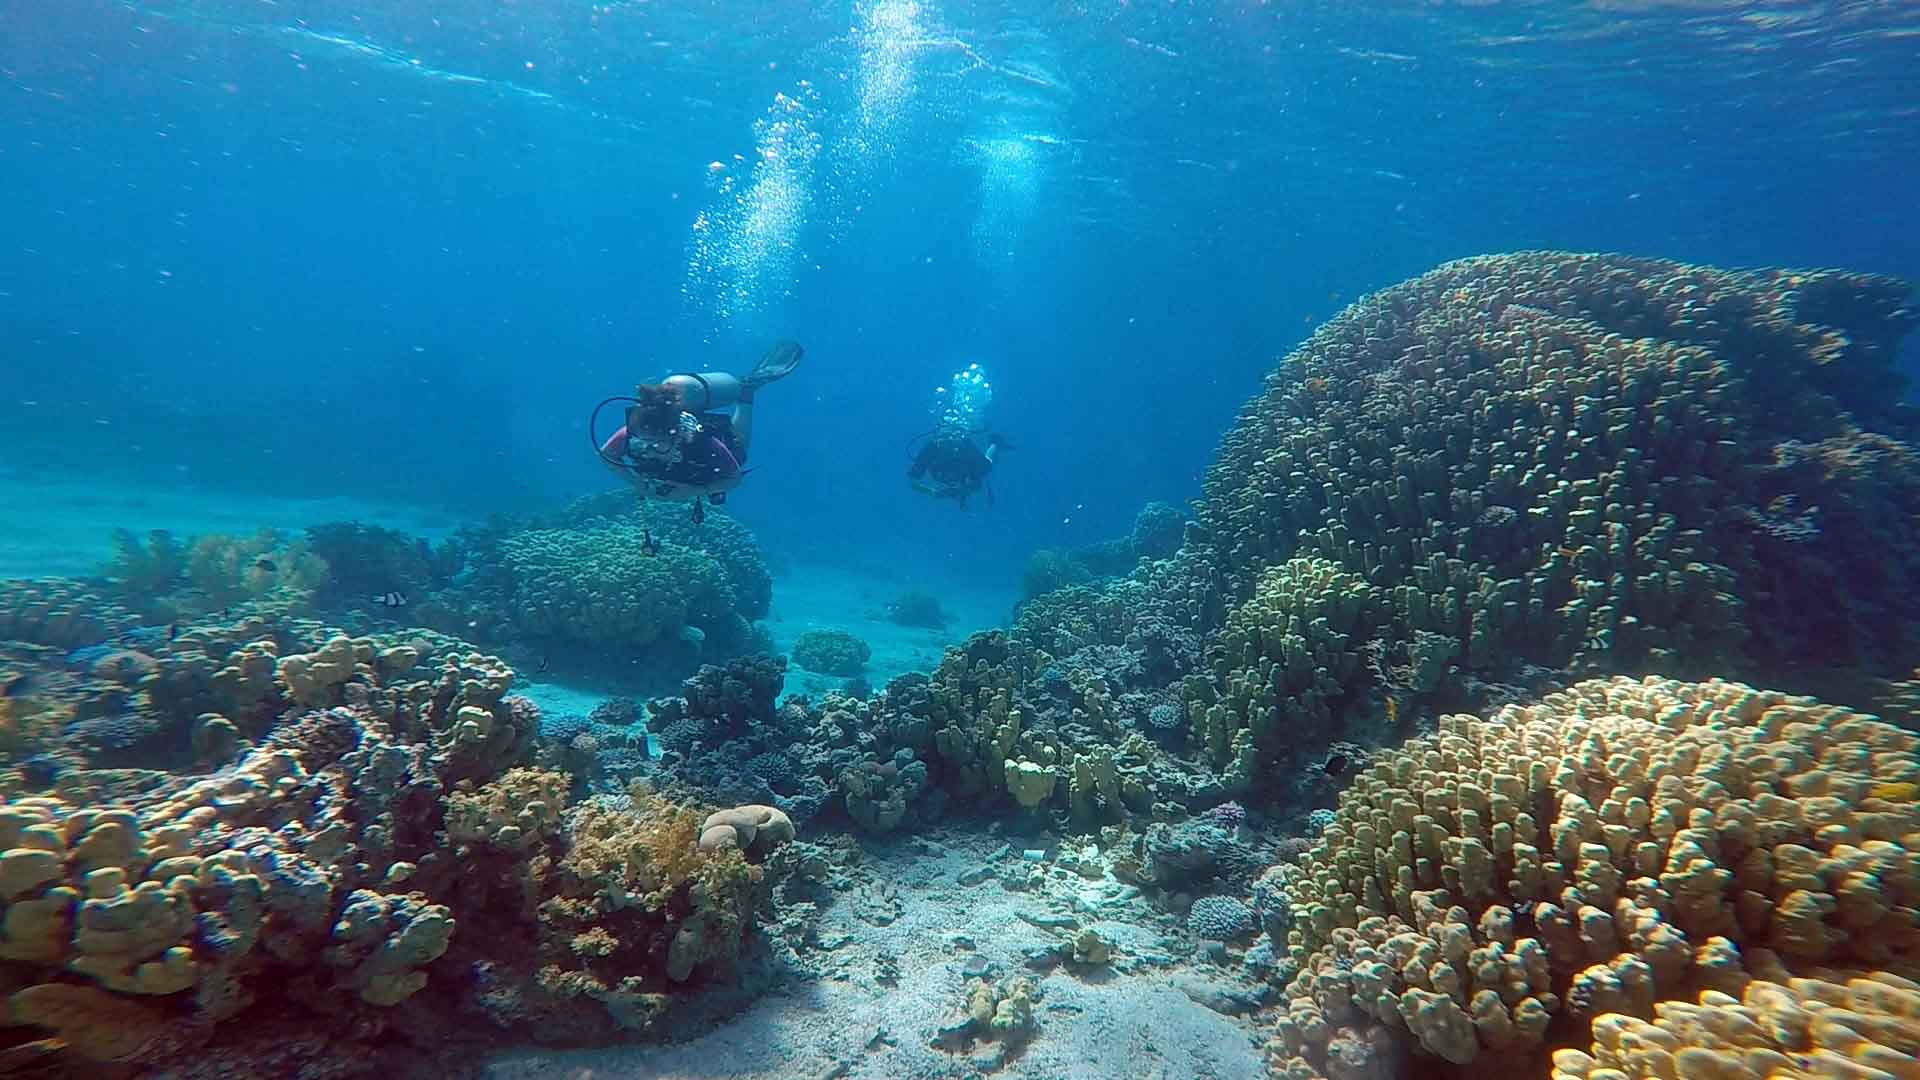 Scuba Diving in the Red Sea, Jordan